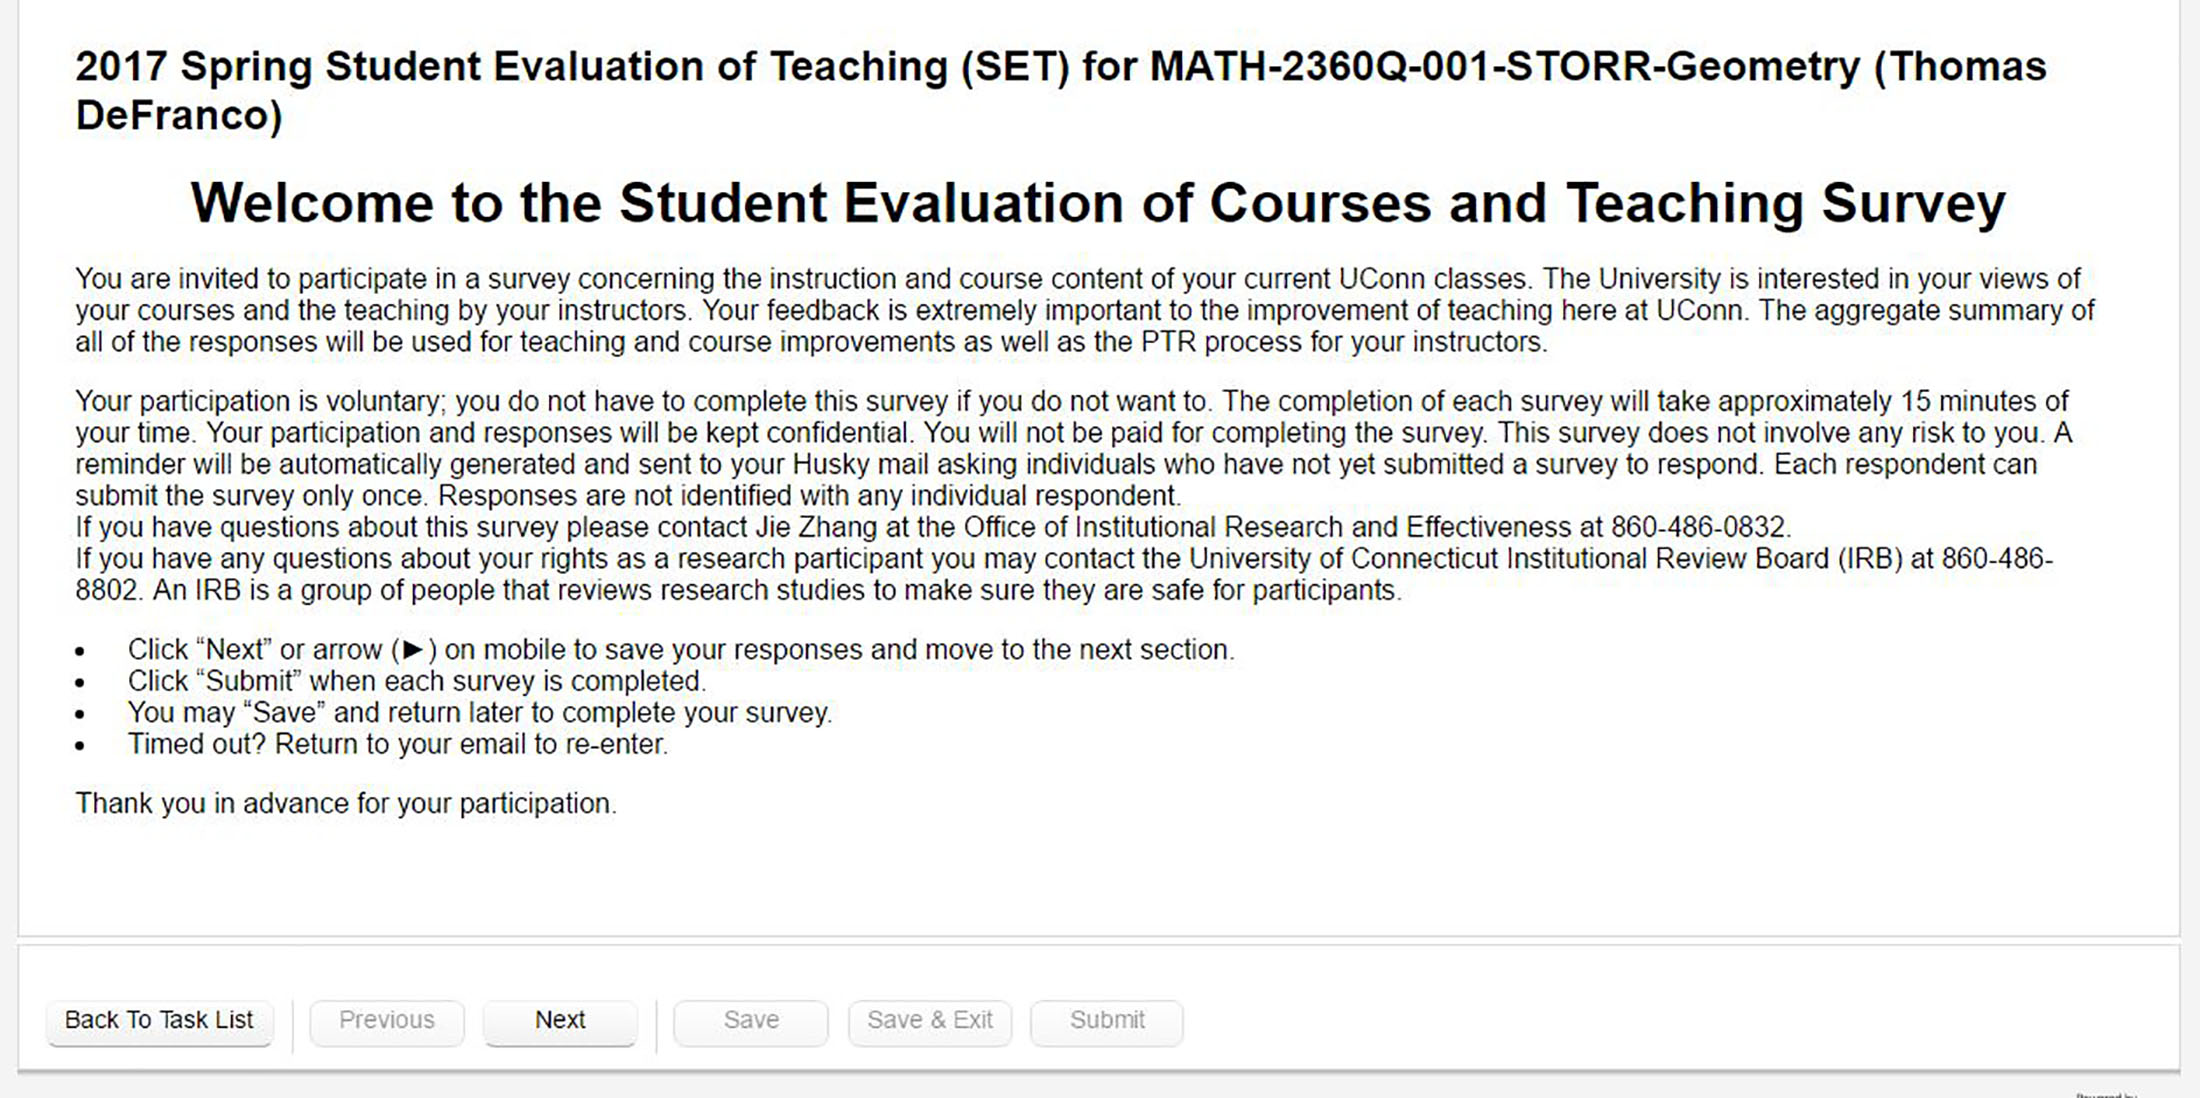 Students may fill out a Student Evaluation of Teaching survey for each of their courses, and it will take about 15 minutes to finish each survey. (screenshot/Student Evaluation of Teaching)